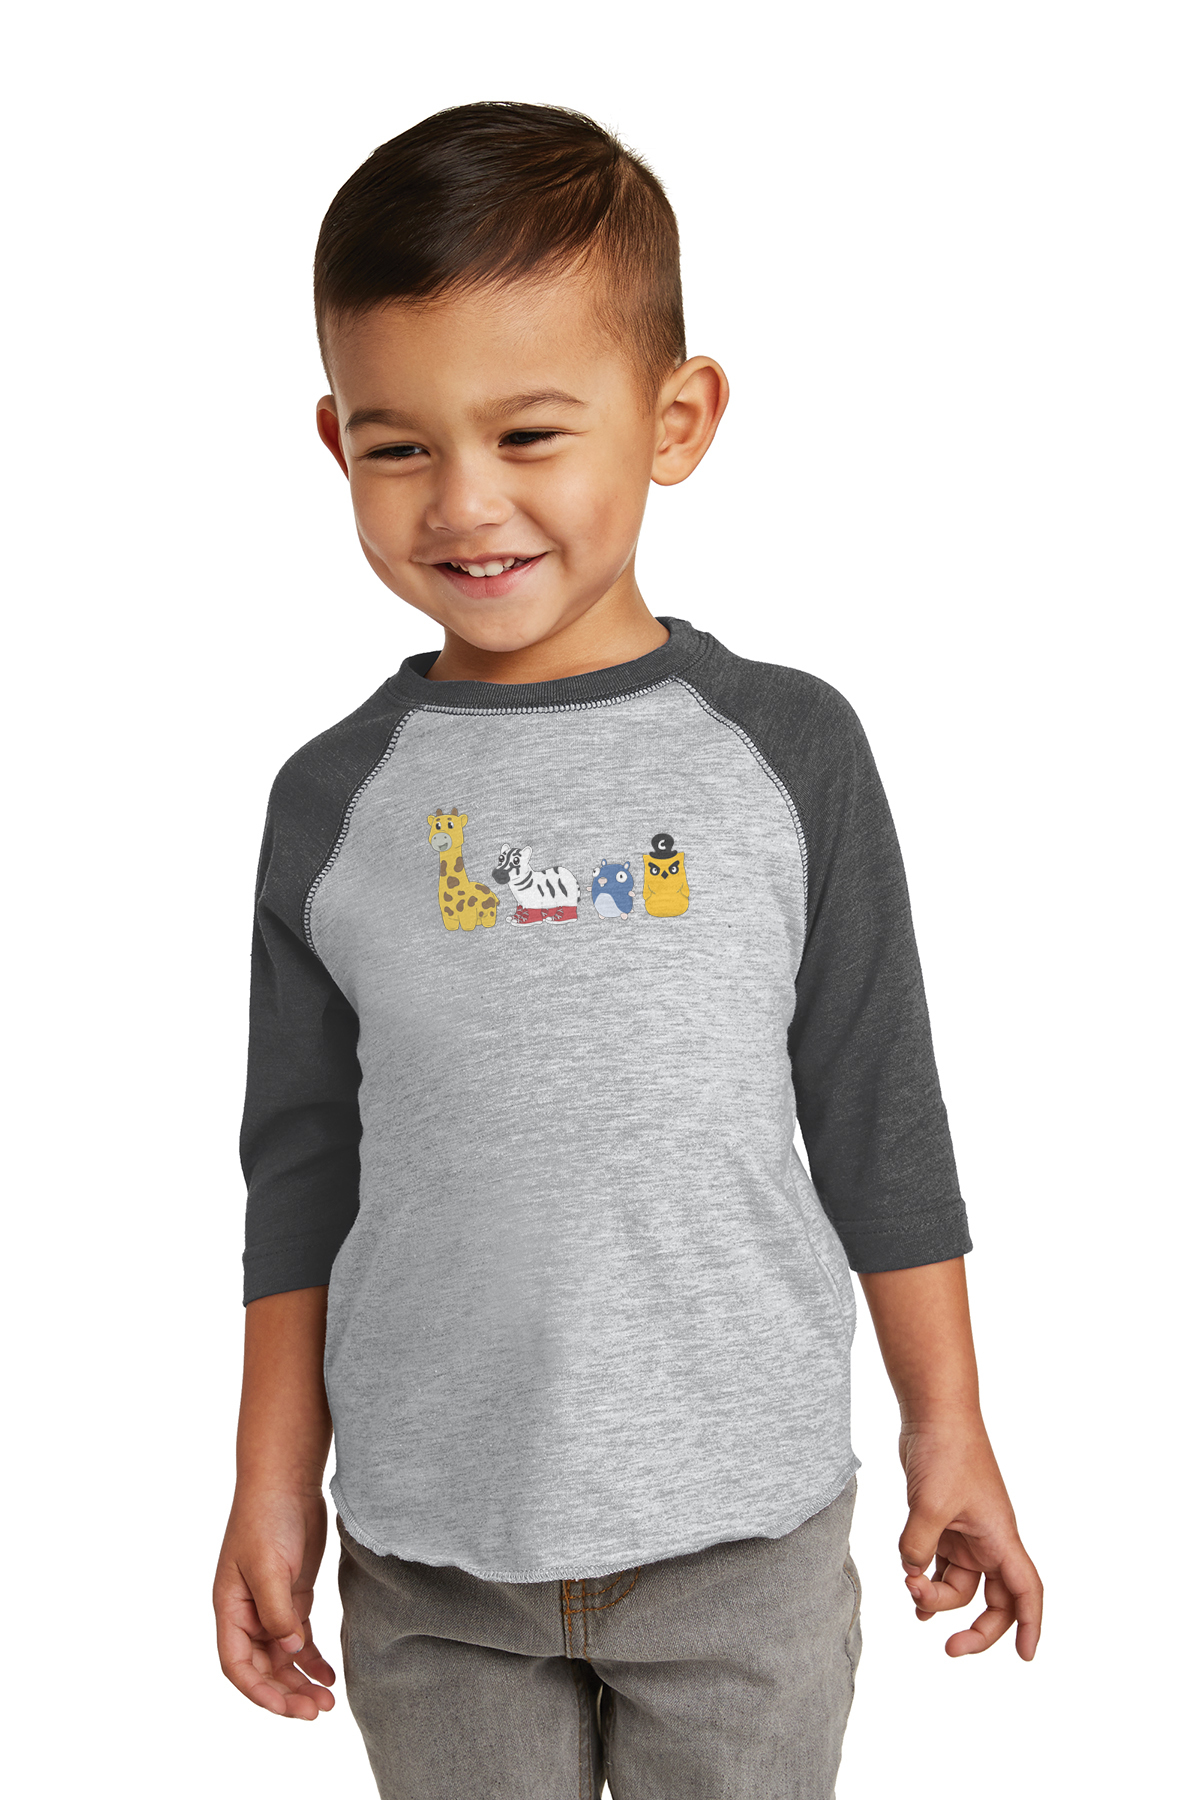 Phippy & Friends Toddler Baseball Tee